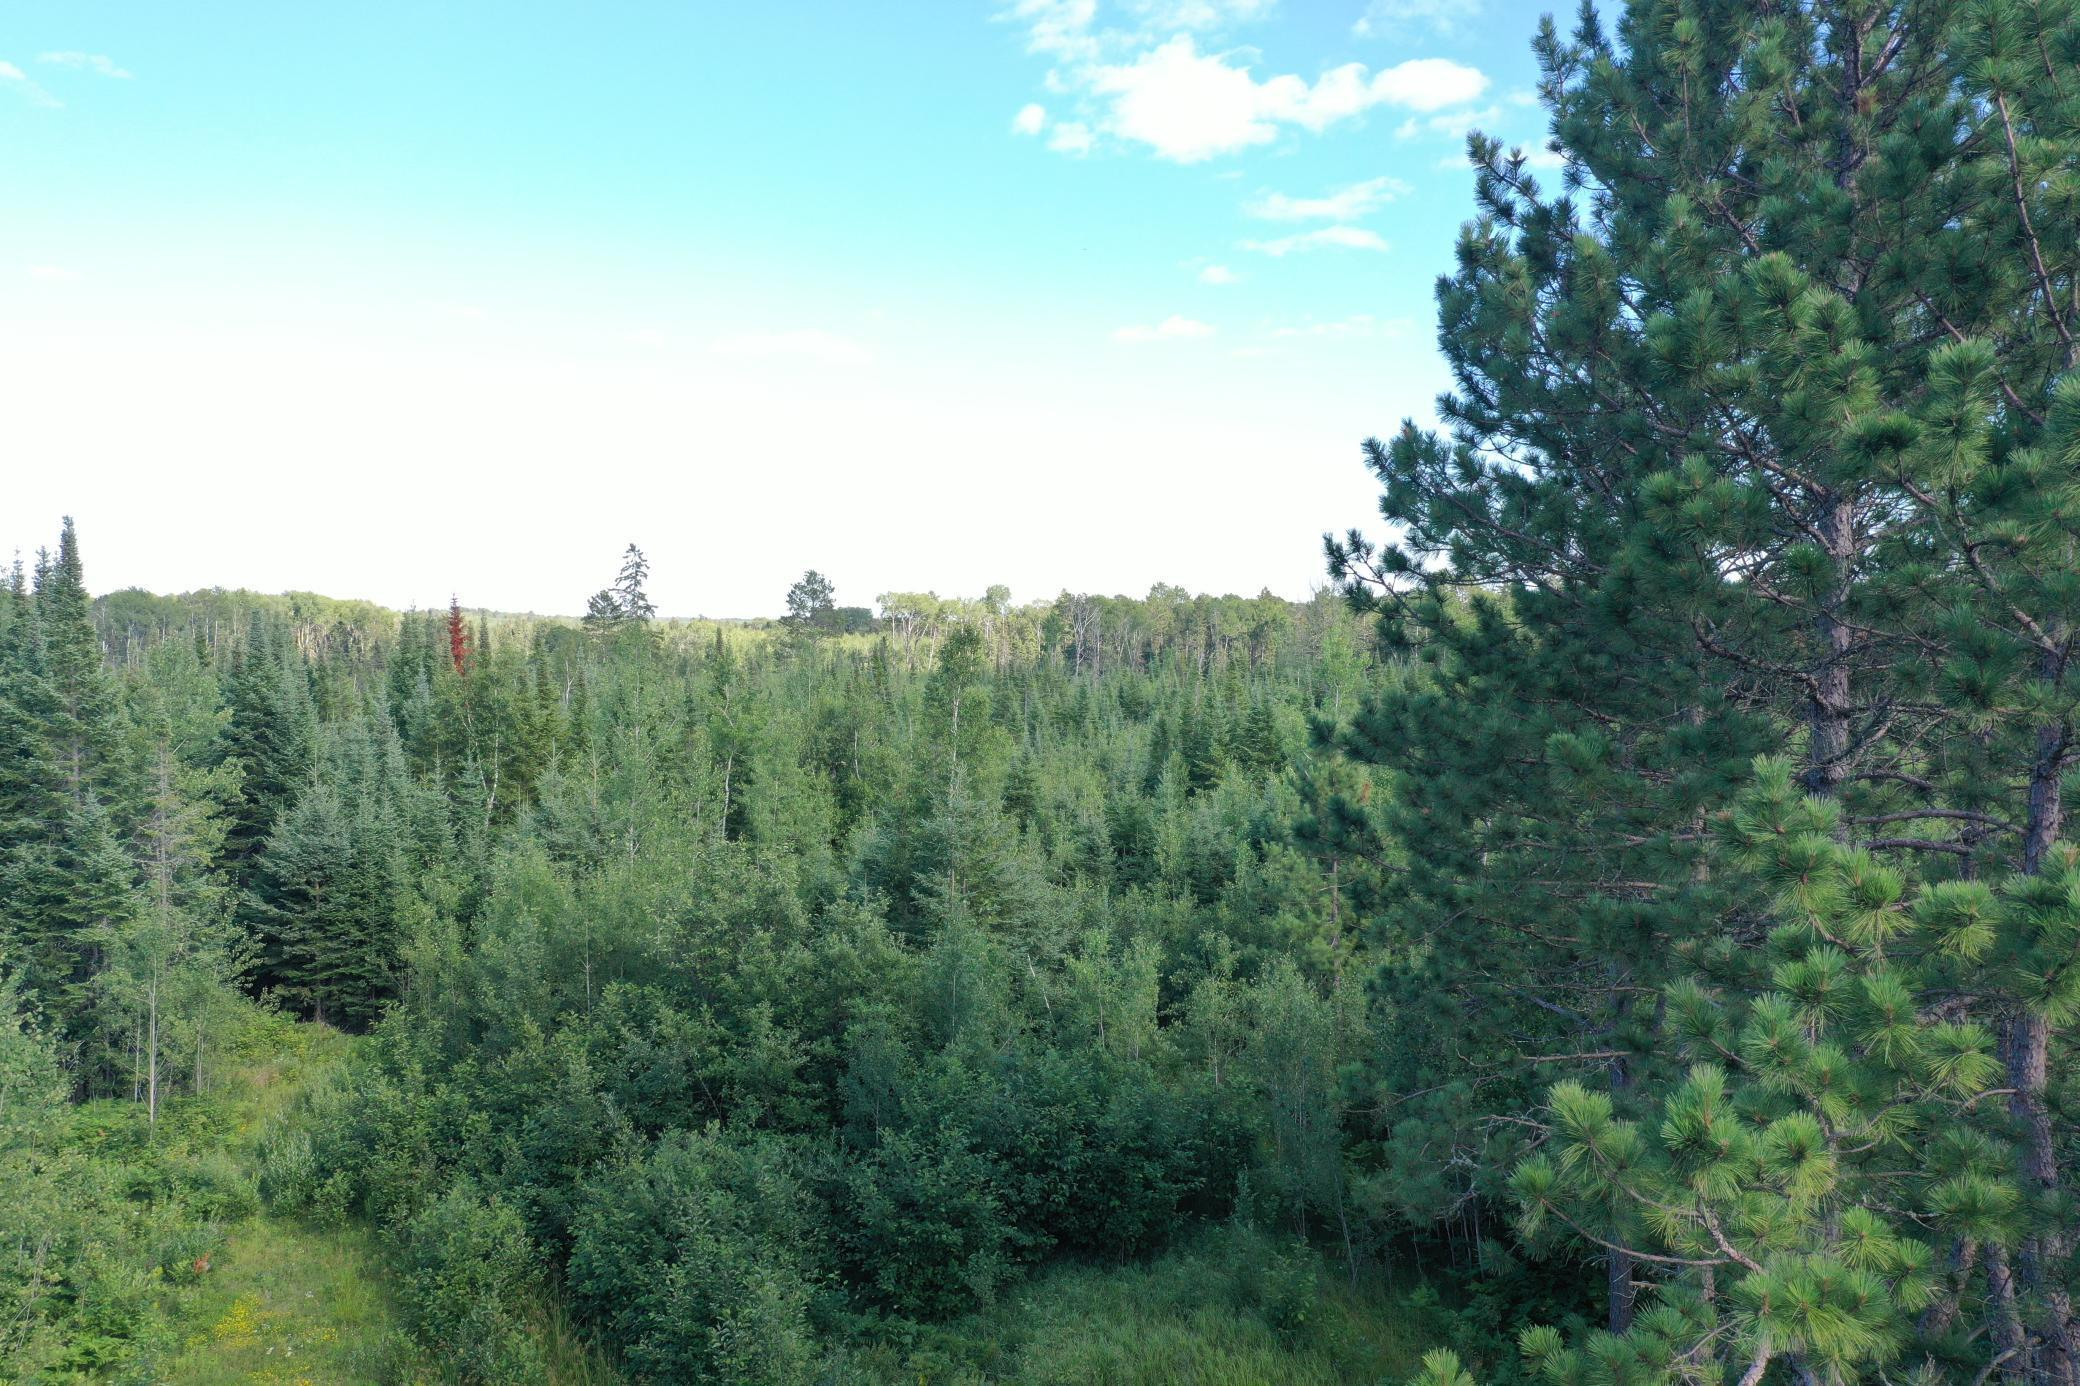 TBD HWY 73 Property Photo - Chisholm, MN real estate listing